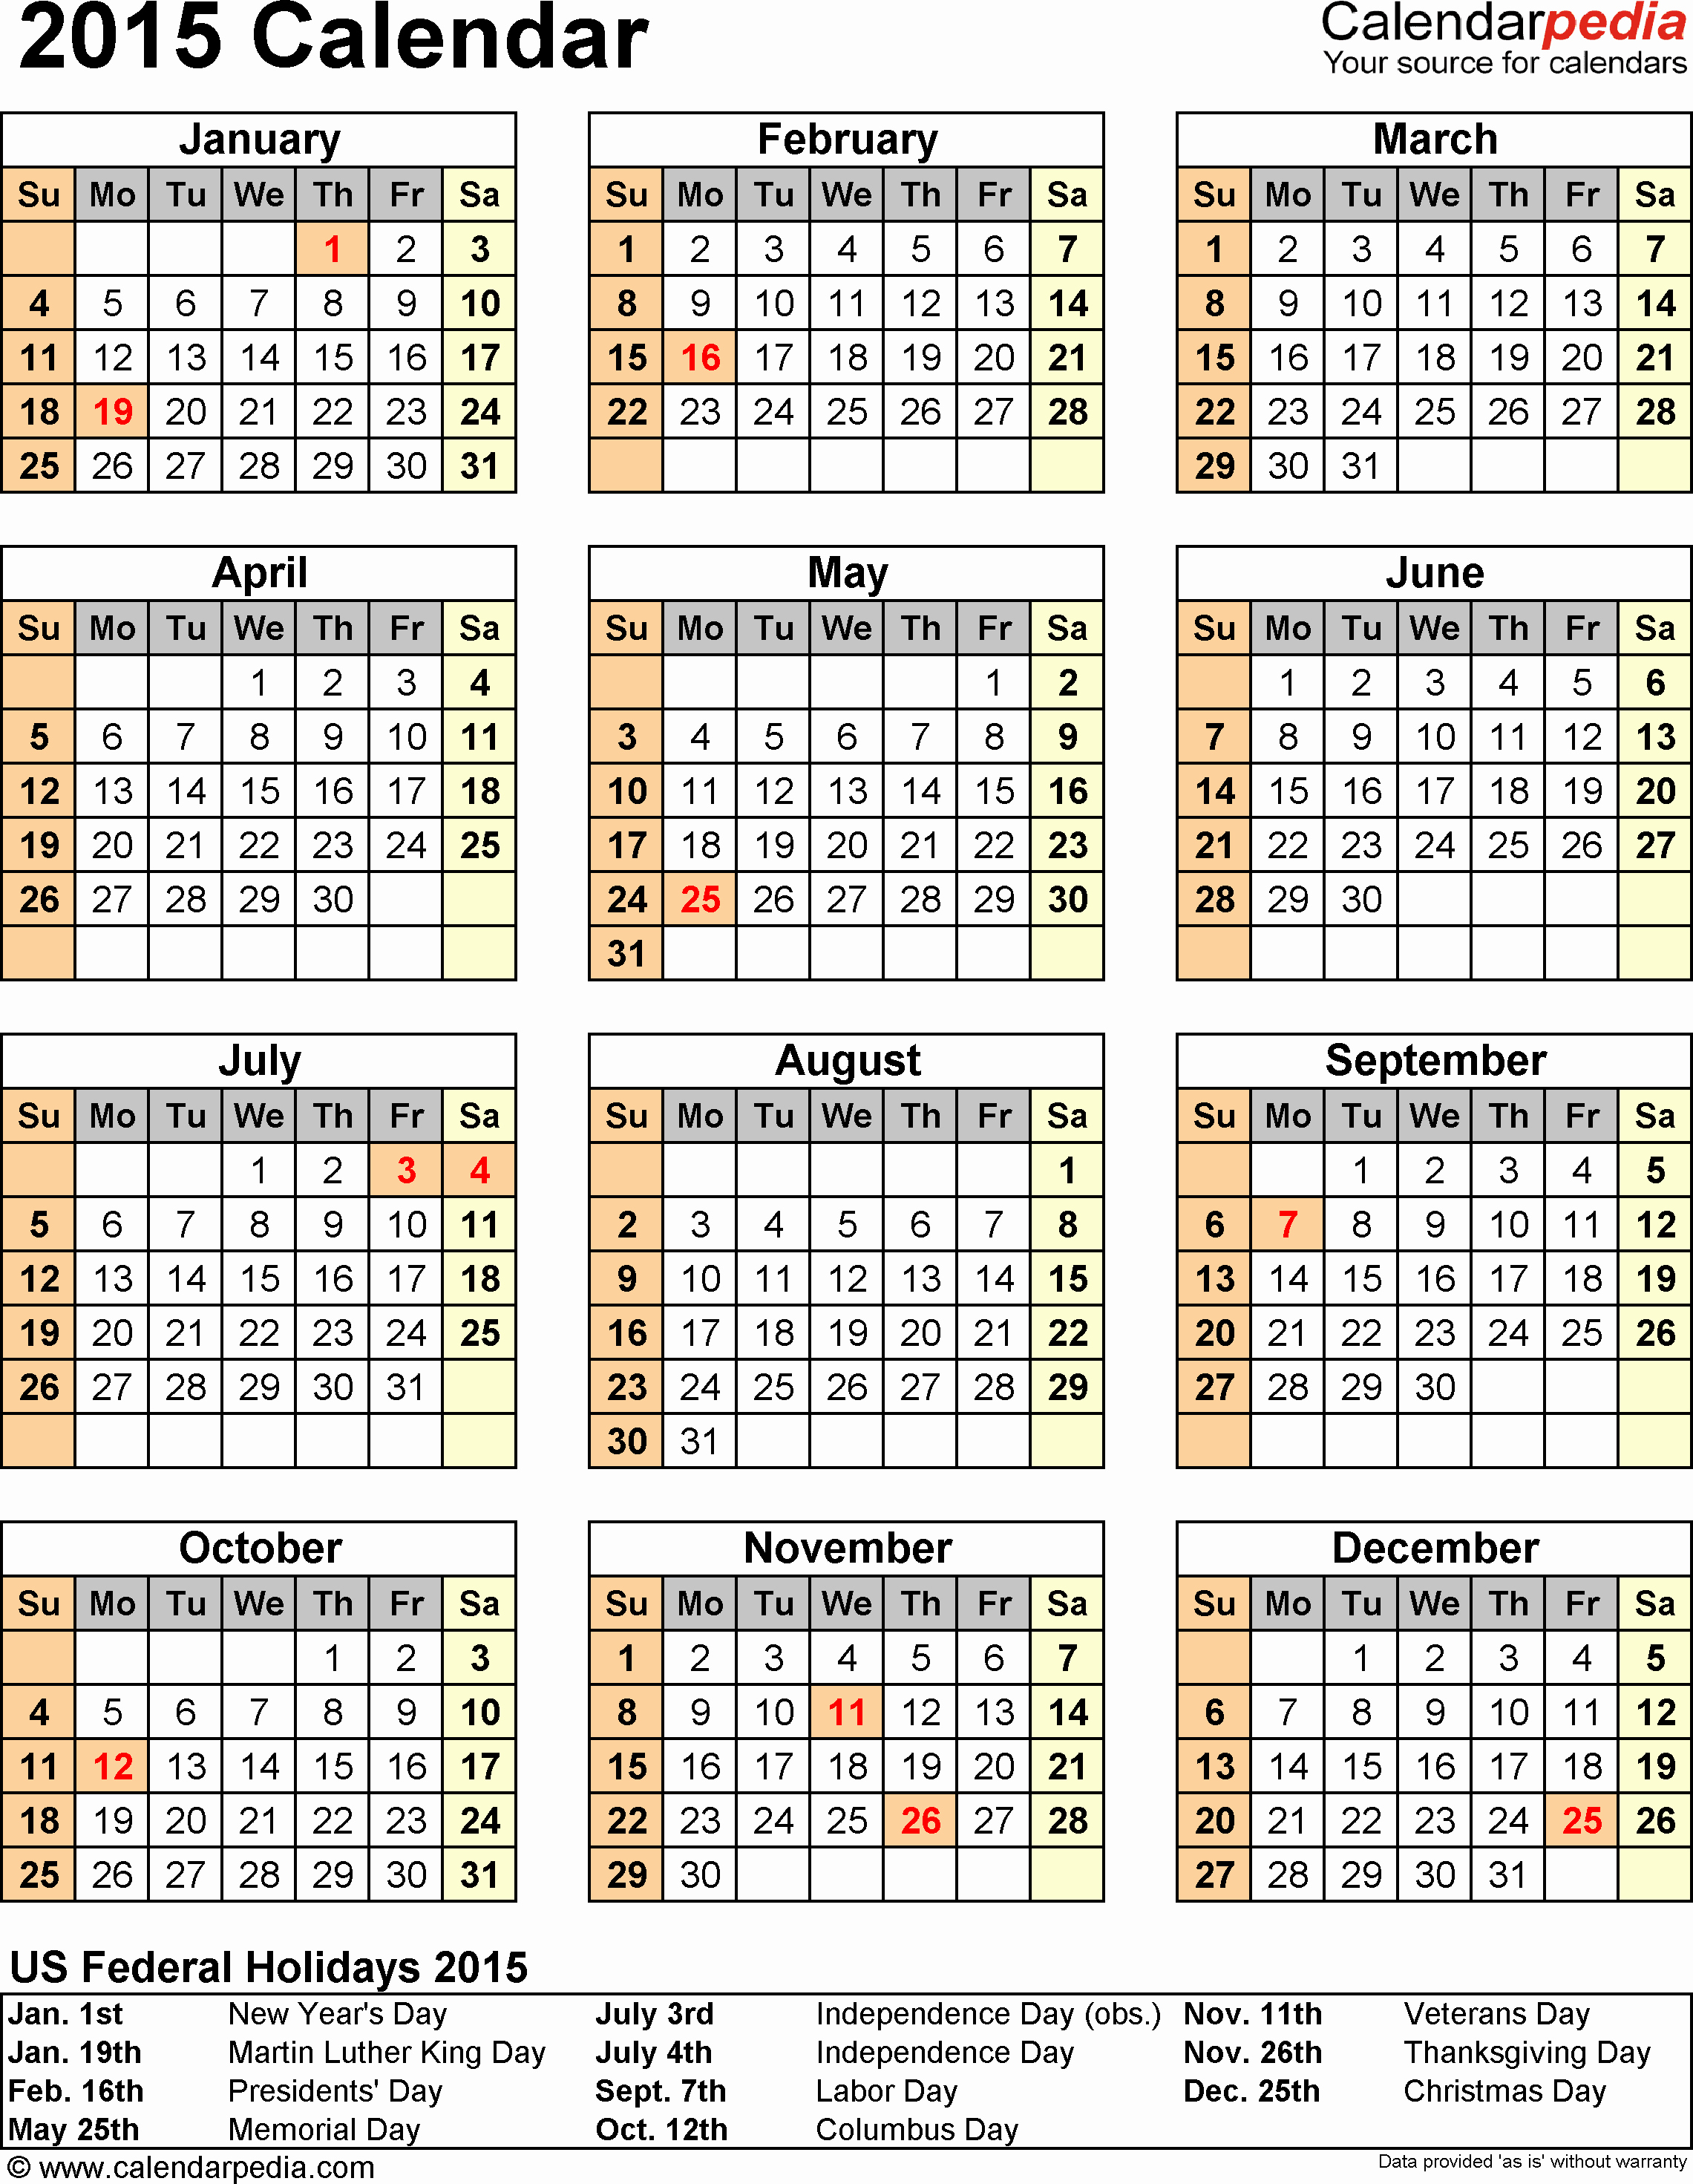 Free 2015 Yearly Calendar Template New 2015 Calendar Printable Free